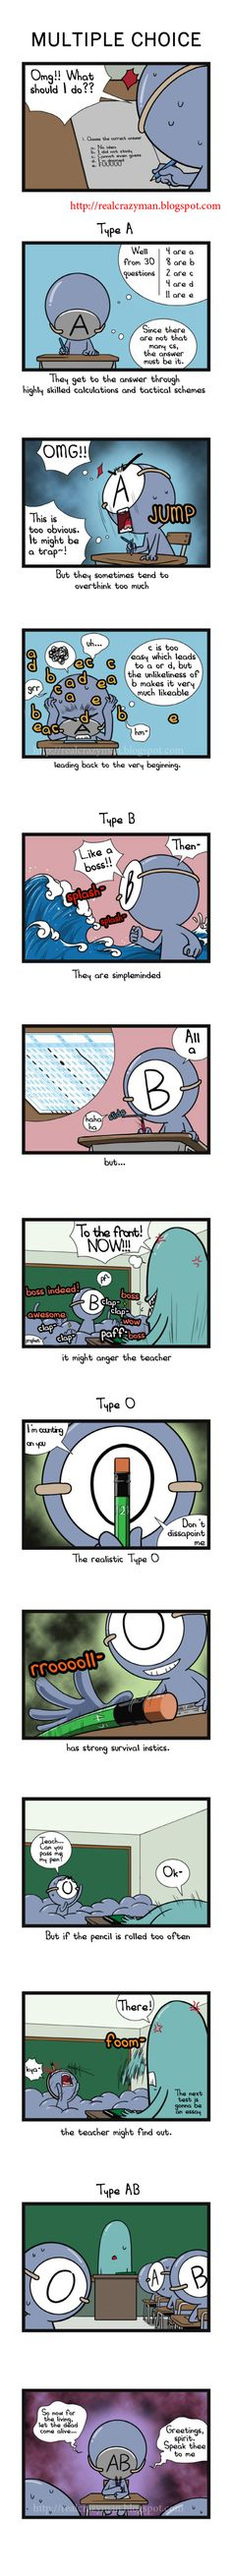 blood type comic - i am an O type but i was always been a good student. I studied before the exam XD